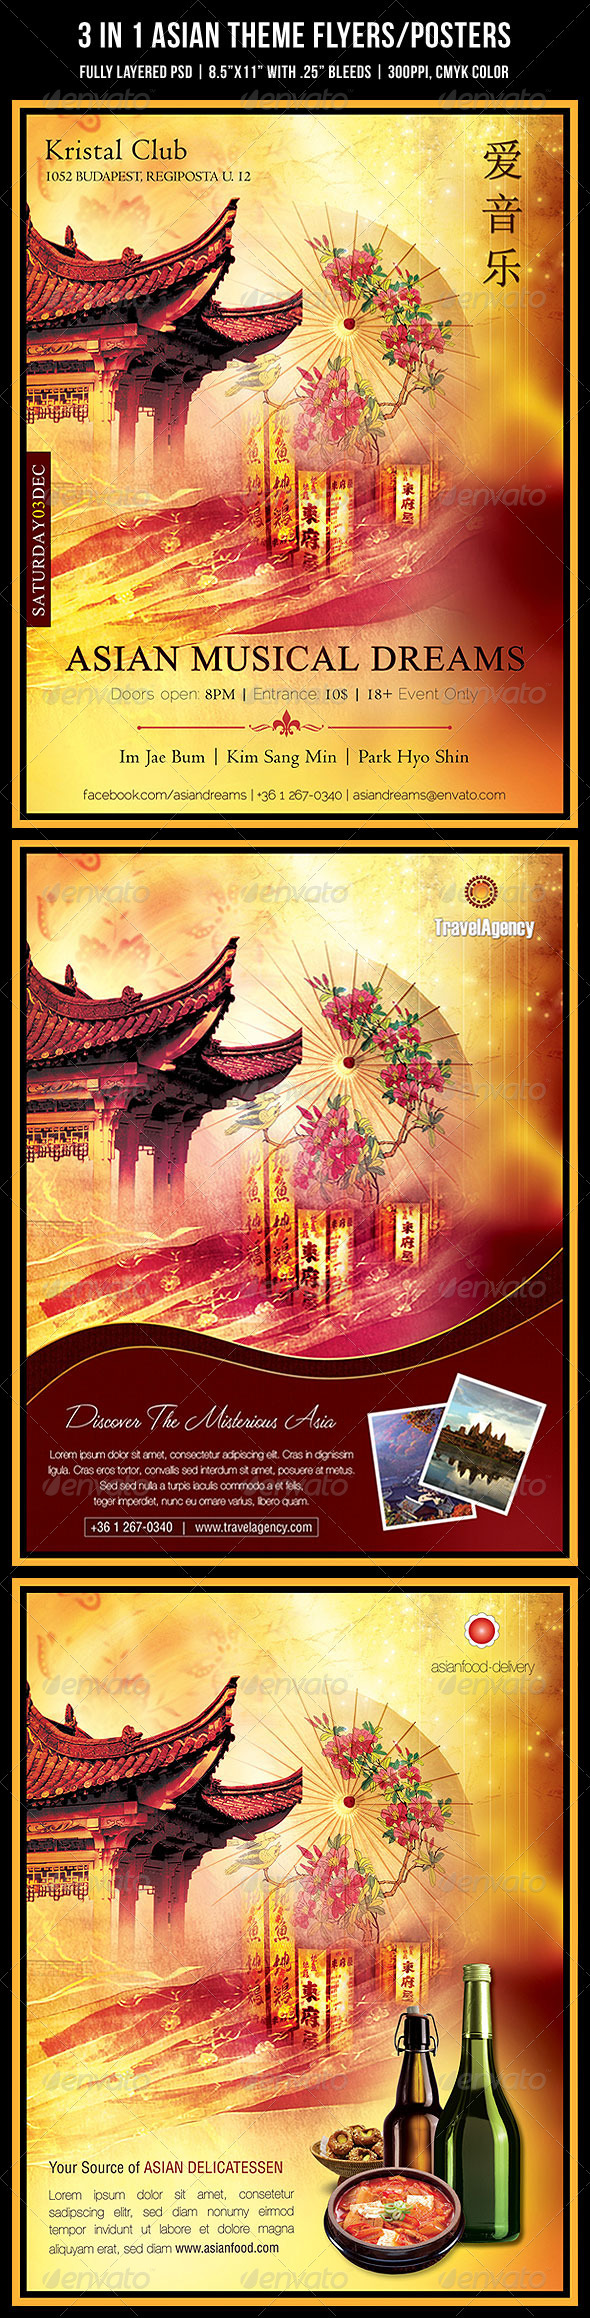 3 in 1 Asian Theme Poster/Flyer